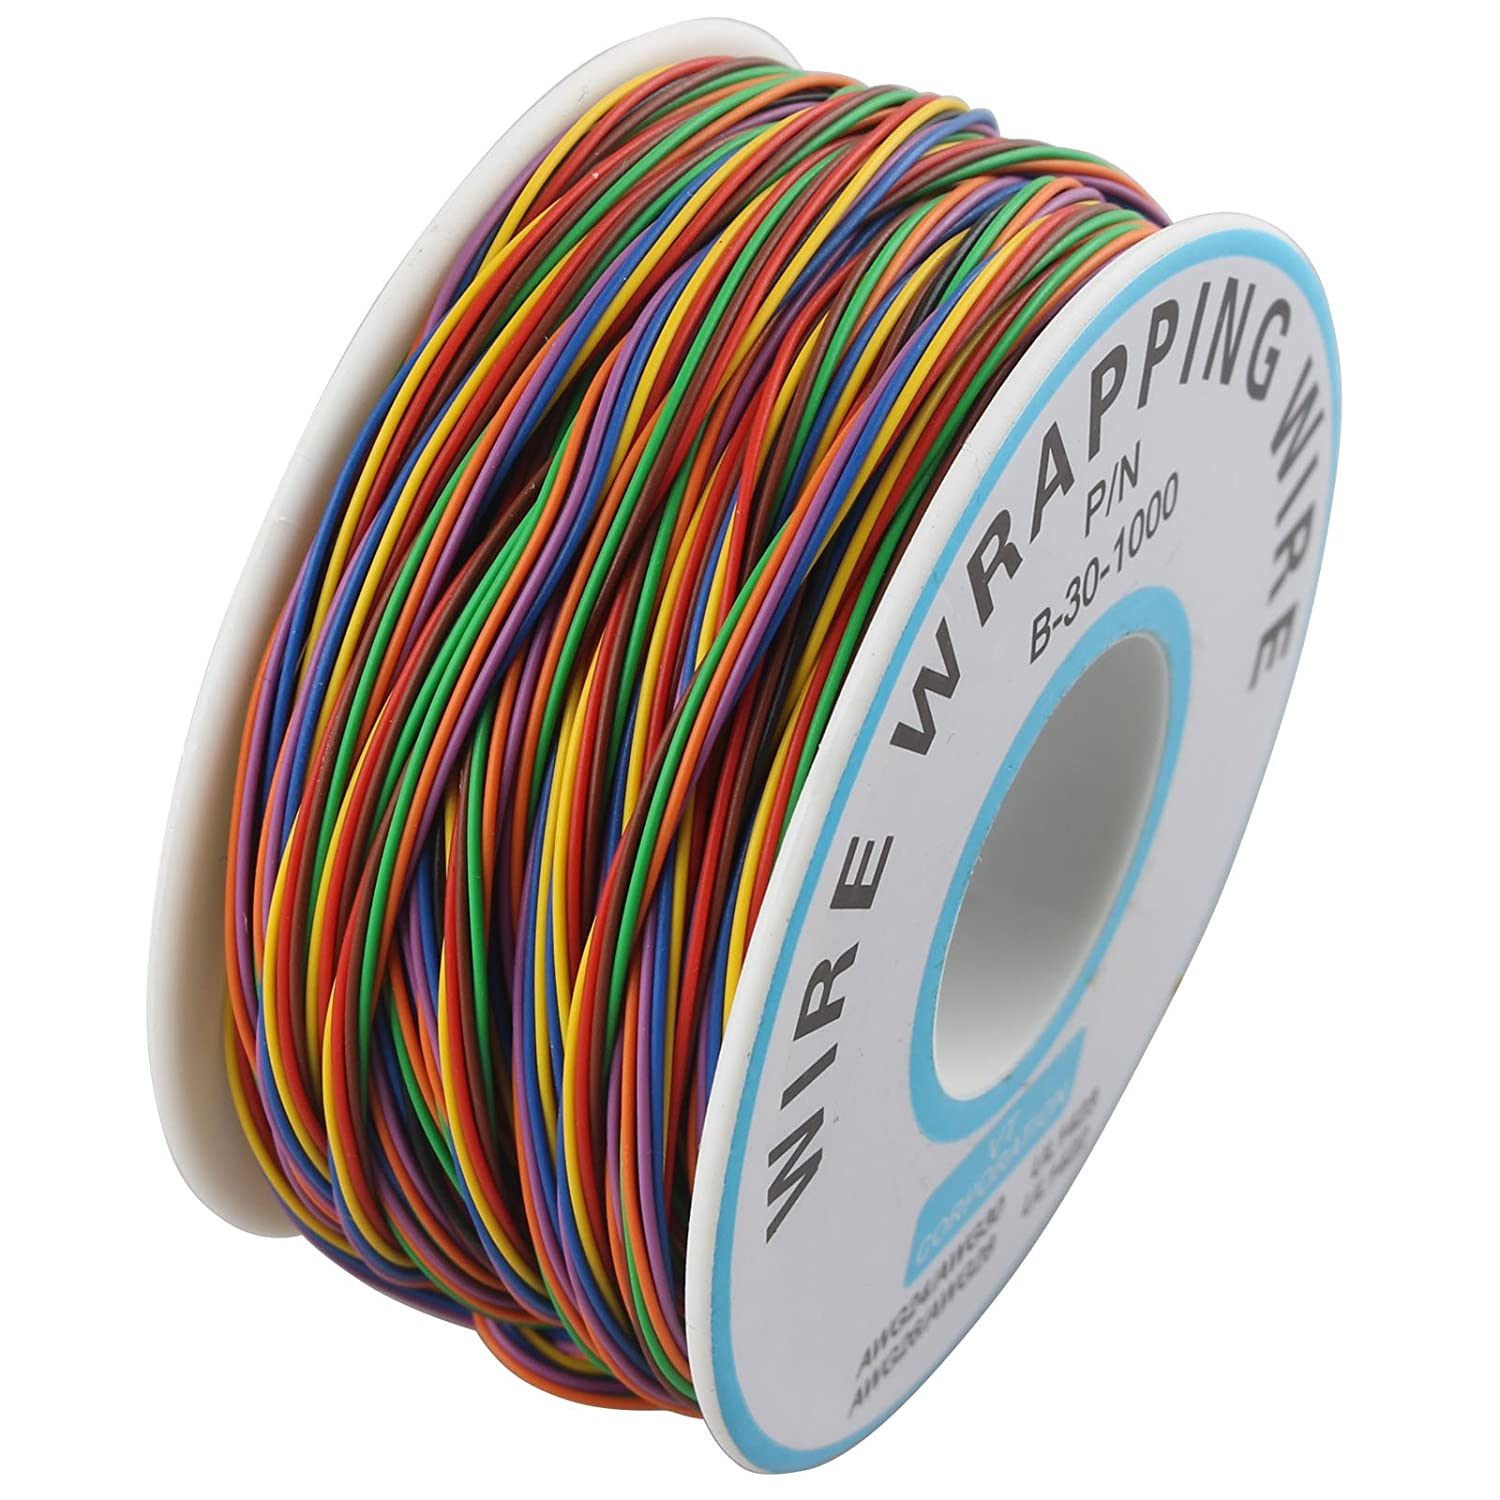 P/N B-30-1000 PCB Jumper Wire 8 Colors Insulation Test Wrapping Cable 15m HALJIA